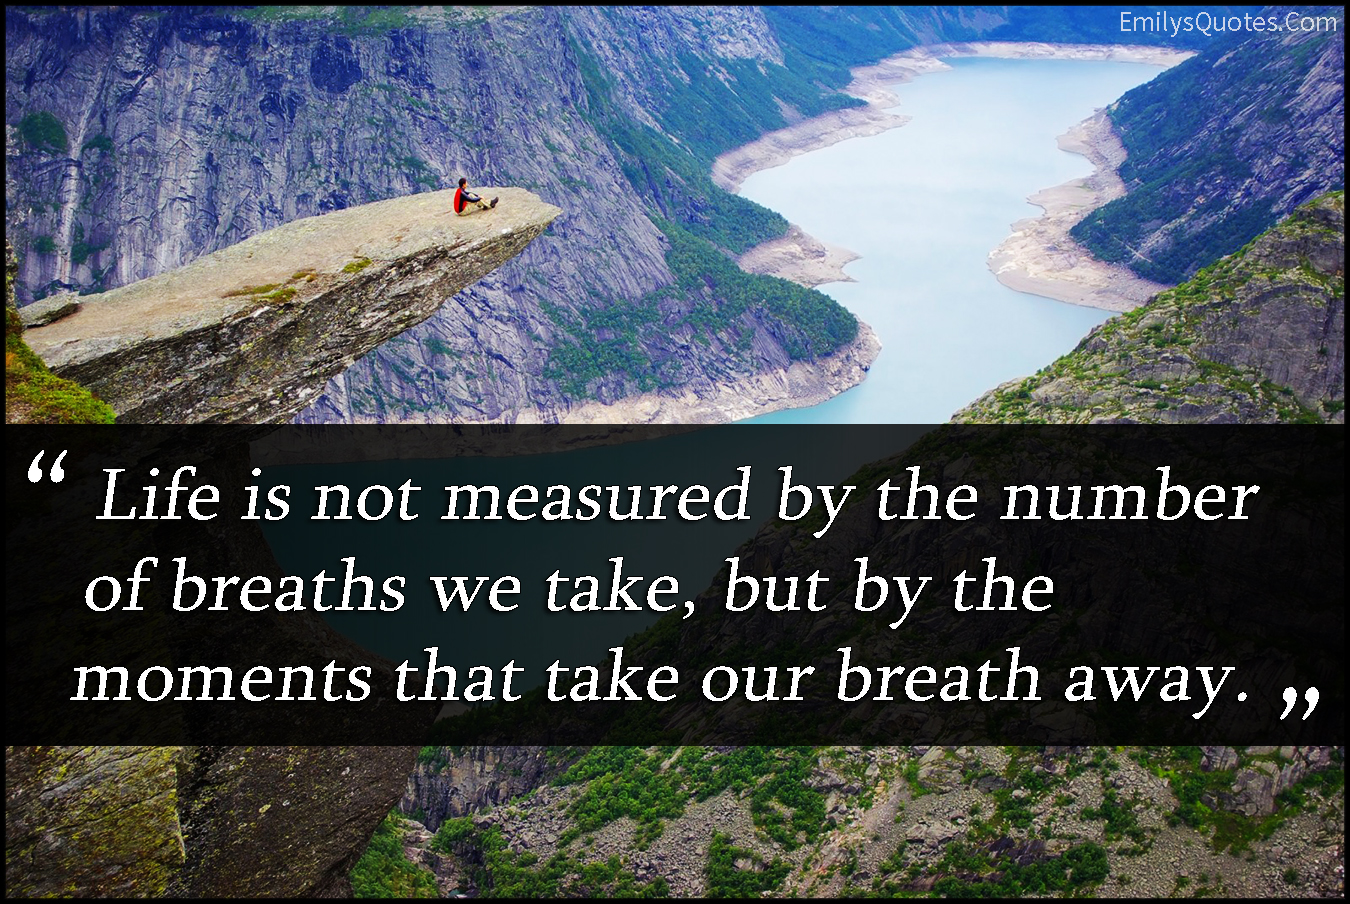 Life Is Not Measured Quote Life Is Not Measuredthe Number Of Breaths We Take Butthe